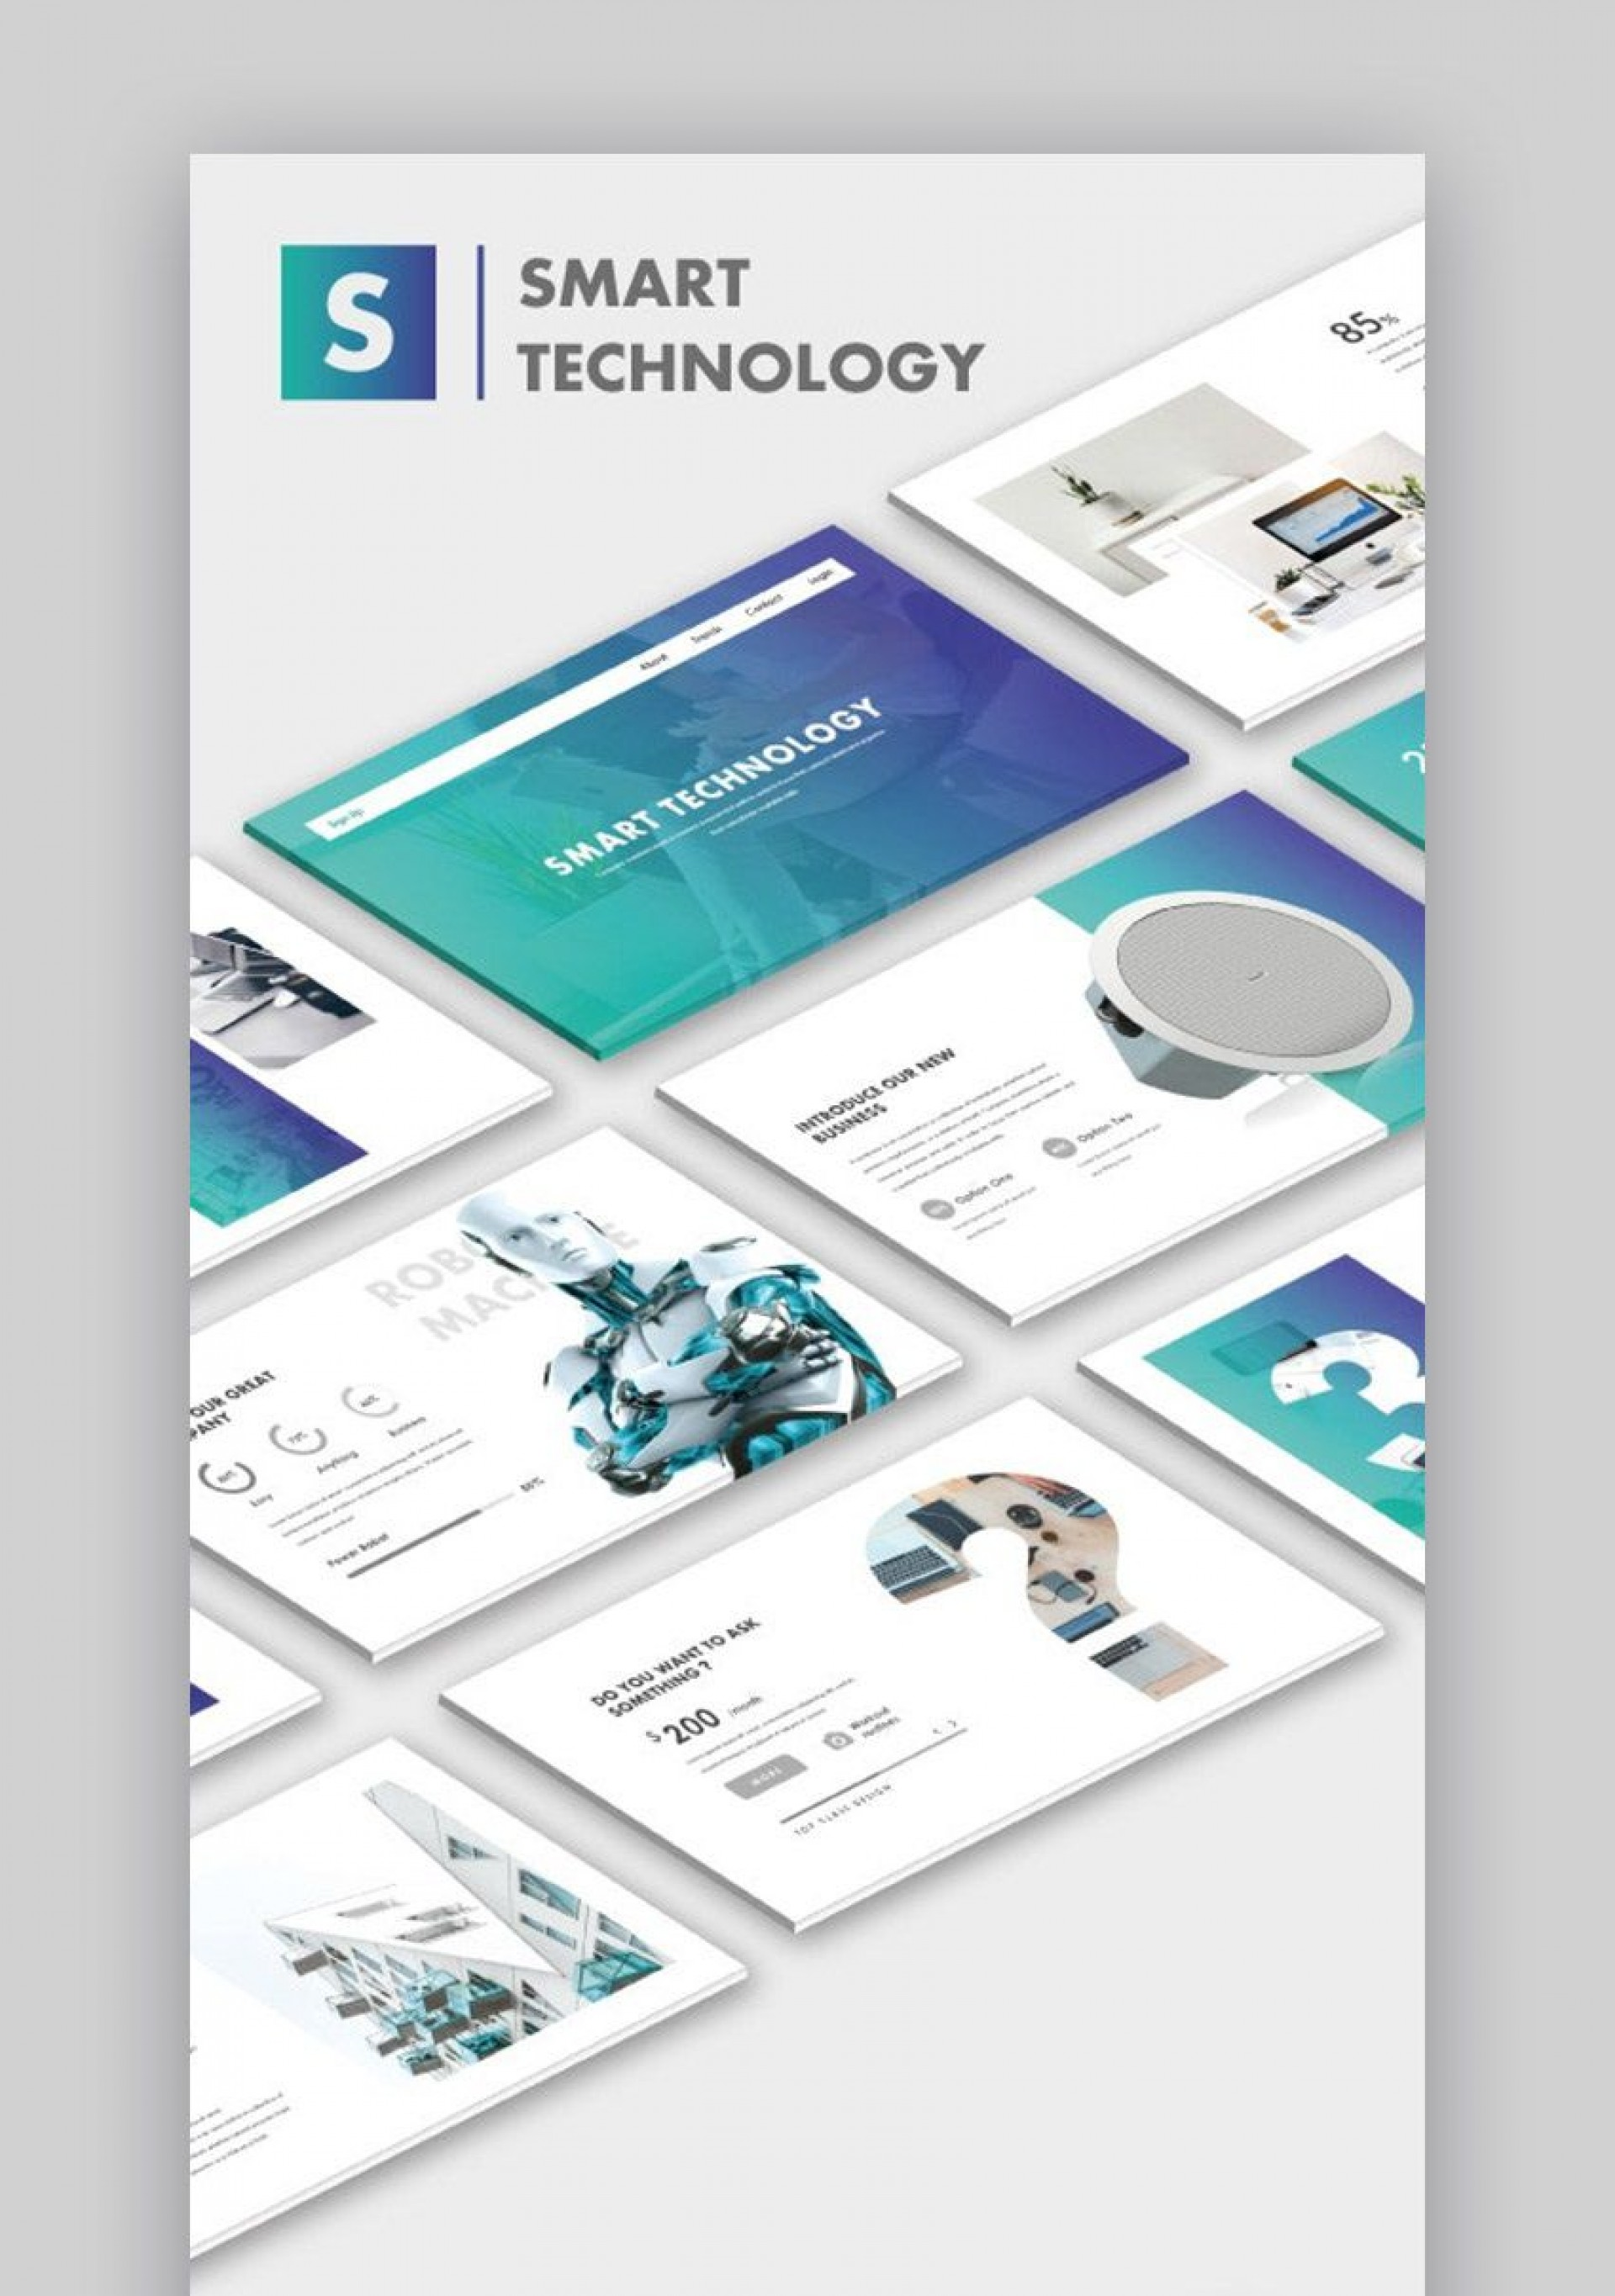 000 Magnificent Free Technology Powerpoint Template High Definition  Templates Animated Information Download1920